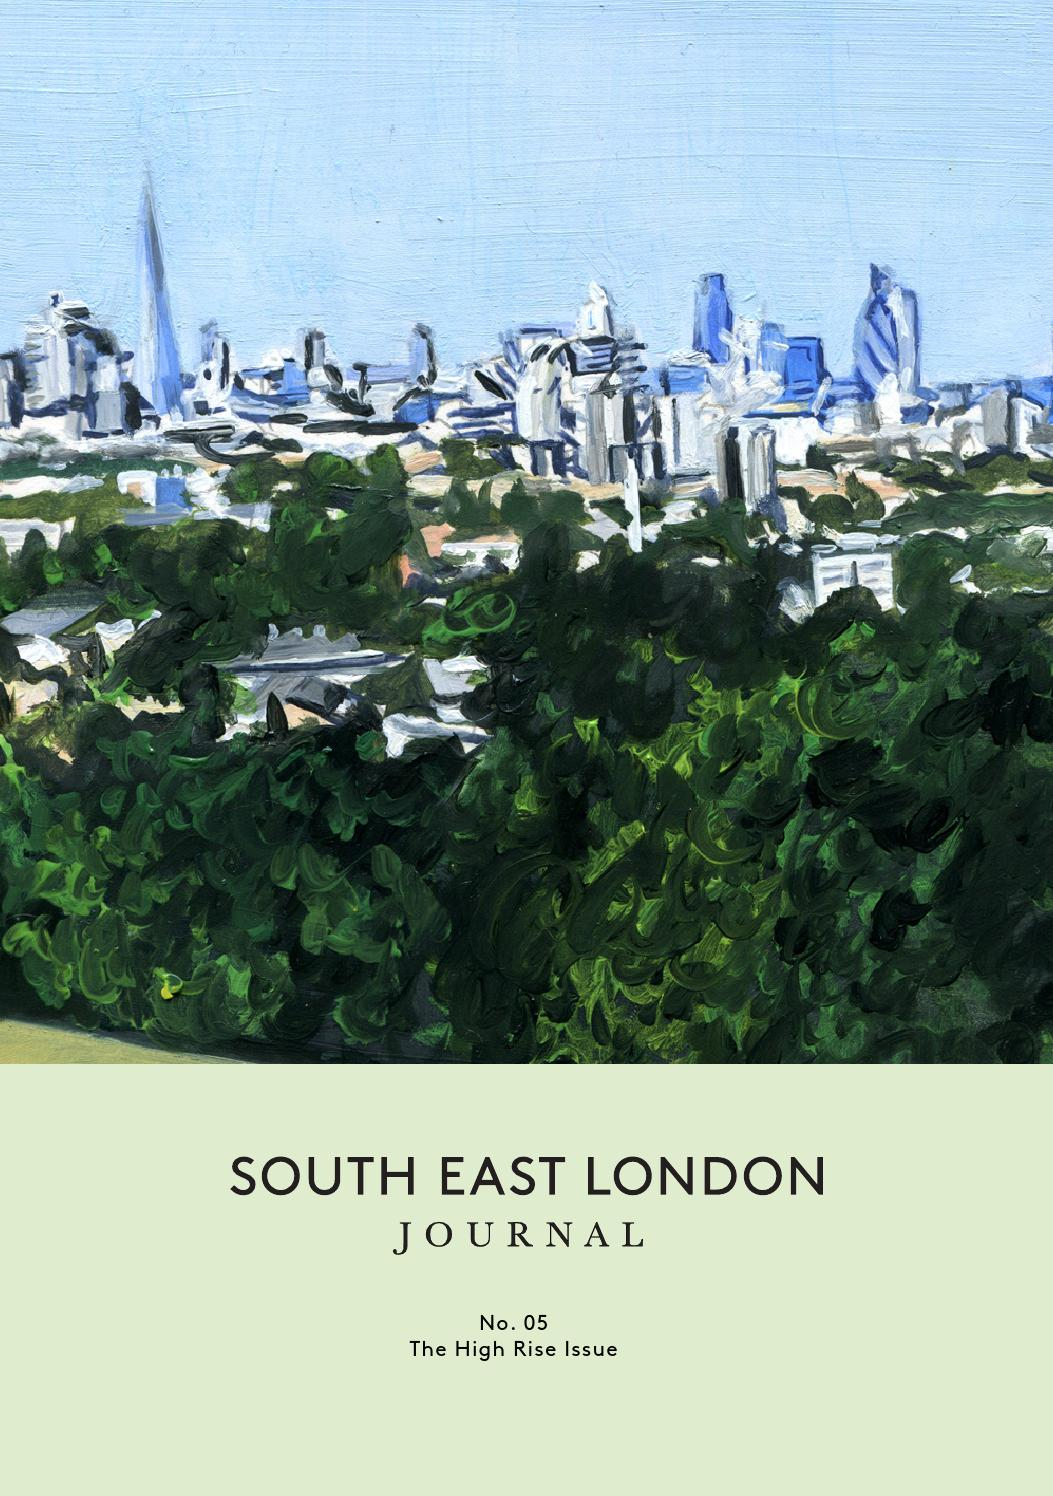 East London: South East London Journal